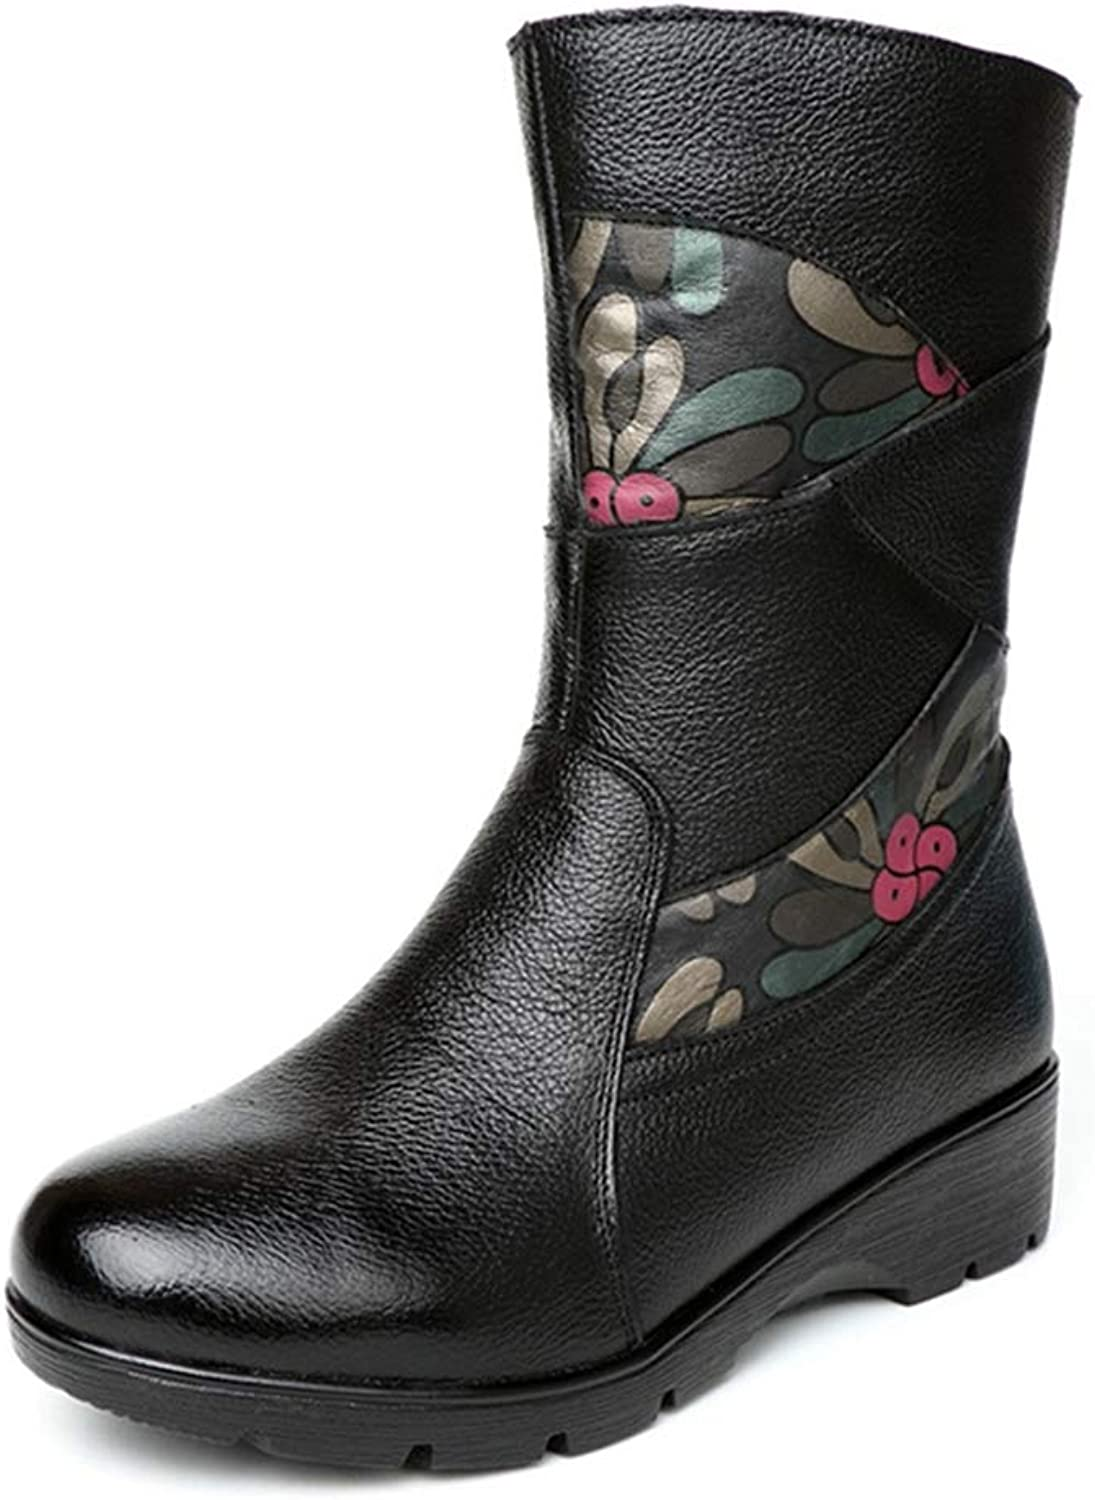 GIY Women's Floral Mid Calf Boots Retro Round Toe Zipper Wedge Low Heel Winter Warm Wide Calf Riding Boots